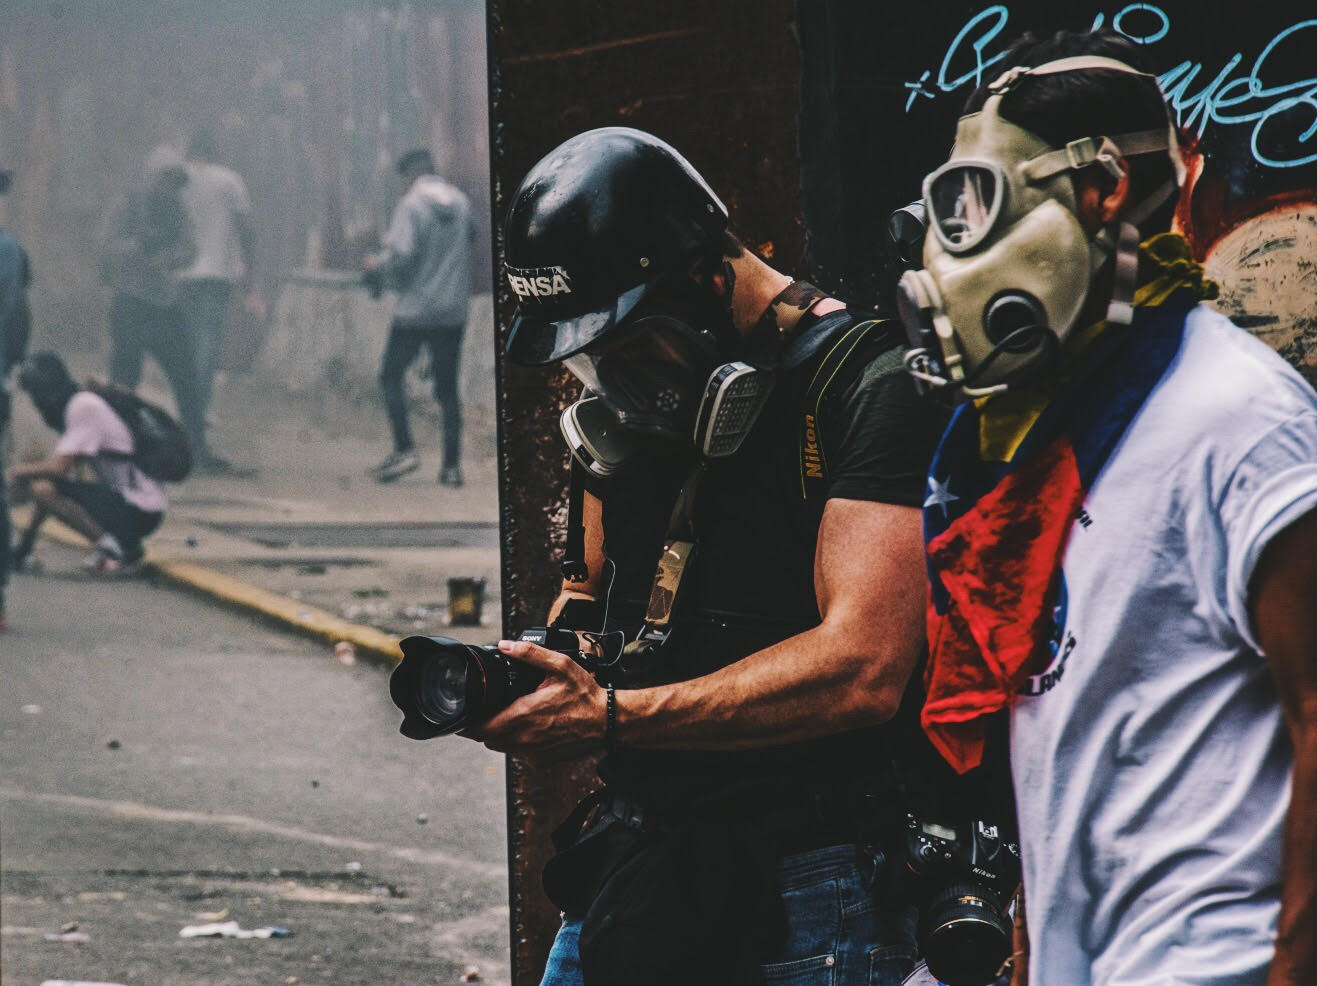 Braulio Jatar shooting during Venezuelan protests. Courtesy of NYFA